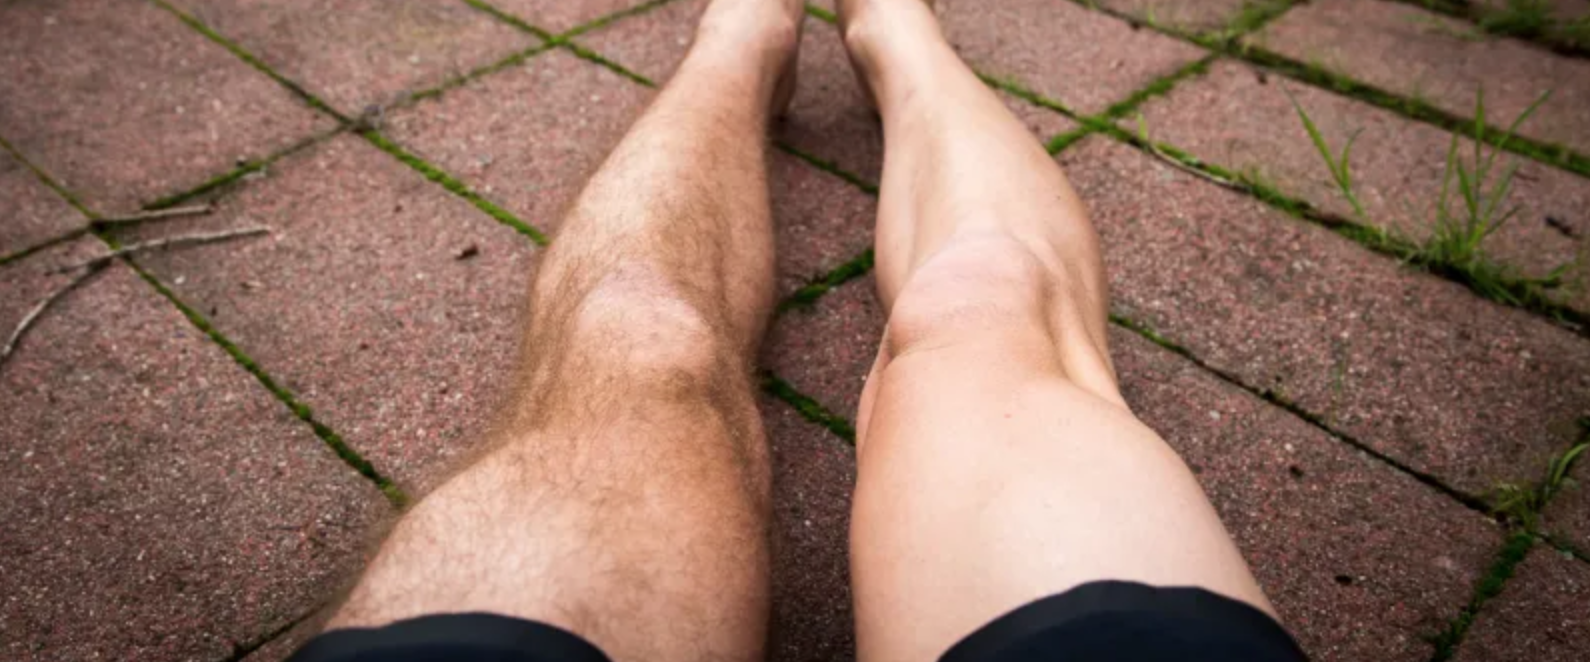 men's legs waxing